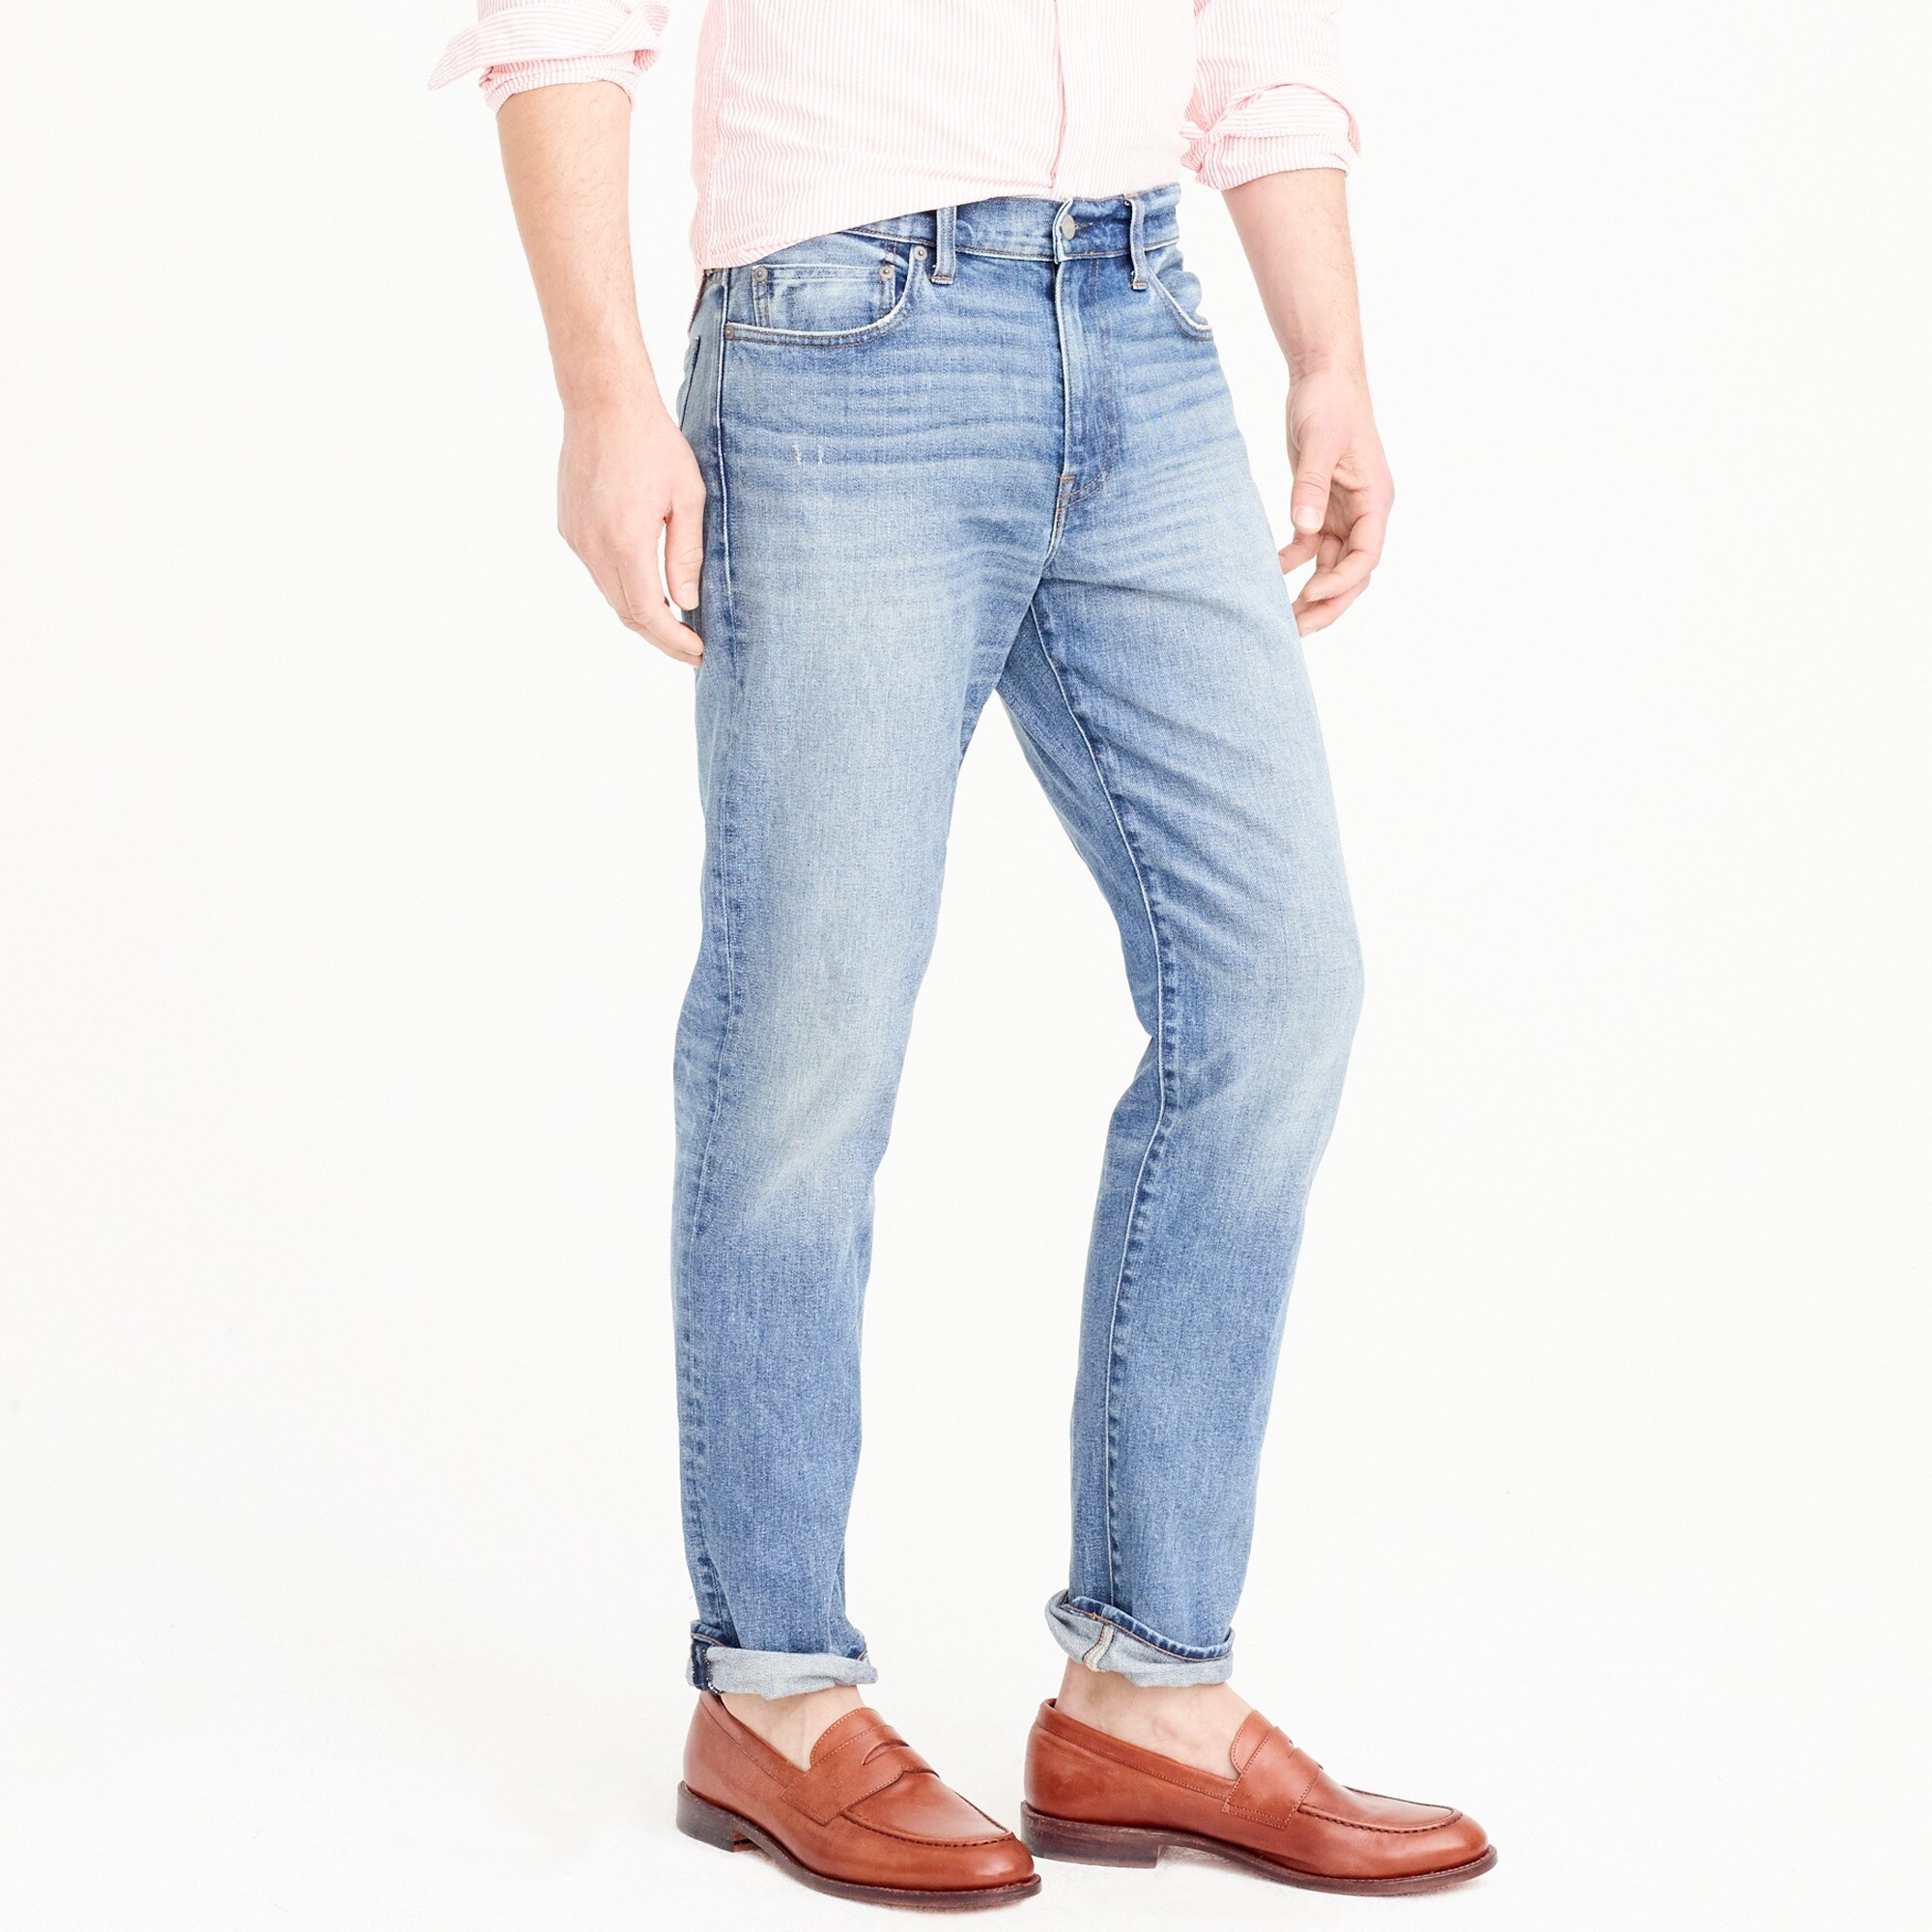 Image 3 for 770 Straight-fit stretch jean in Whitford wash